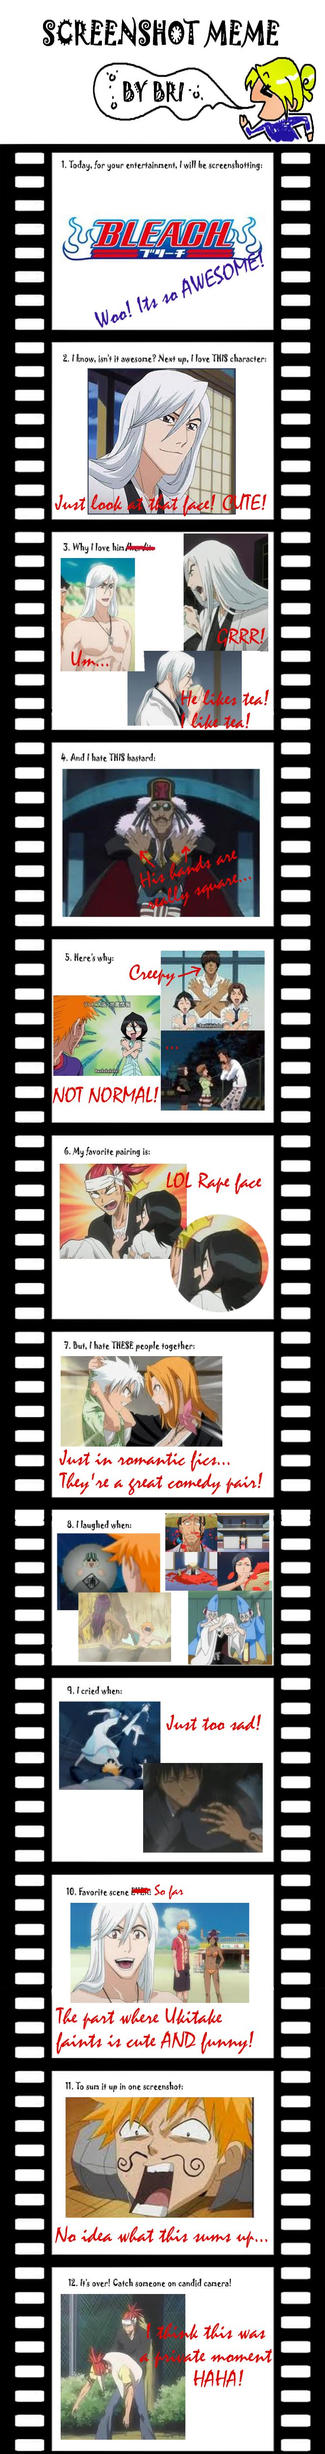 Bleach Screenshot Meme by JennieJutsu